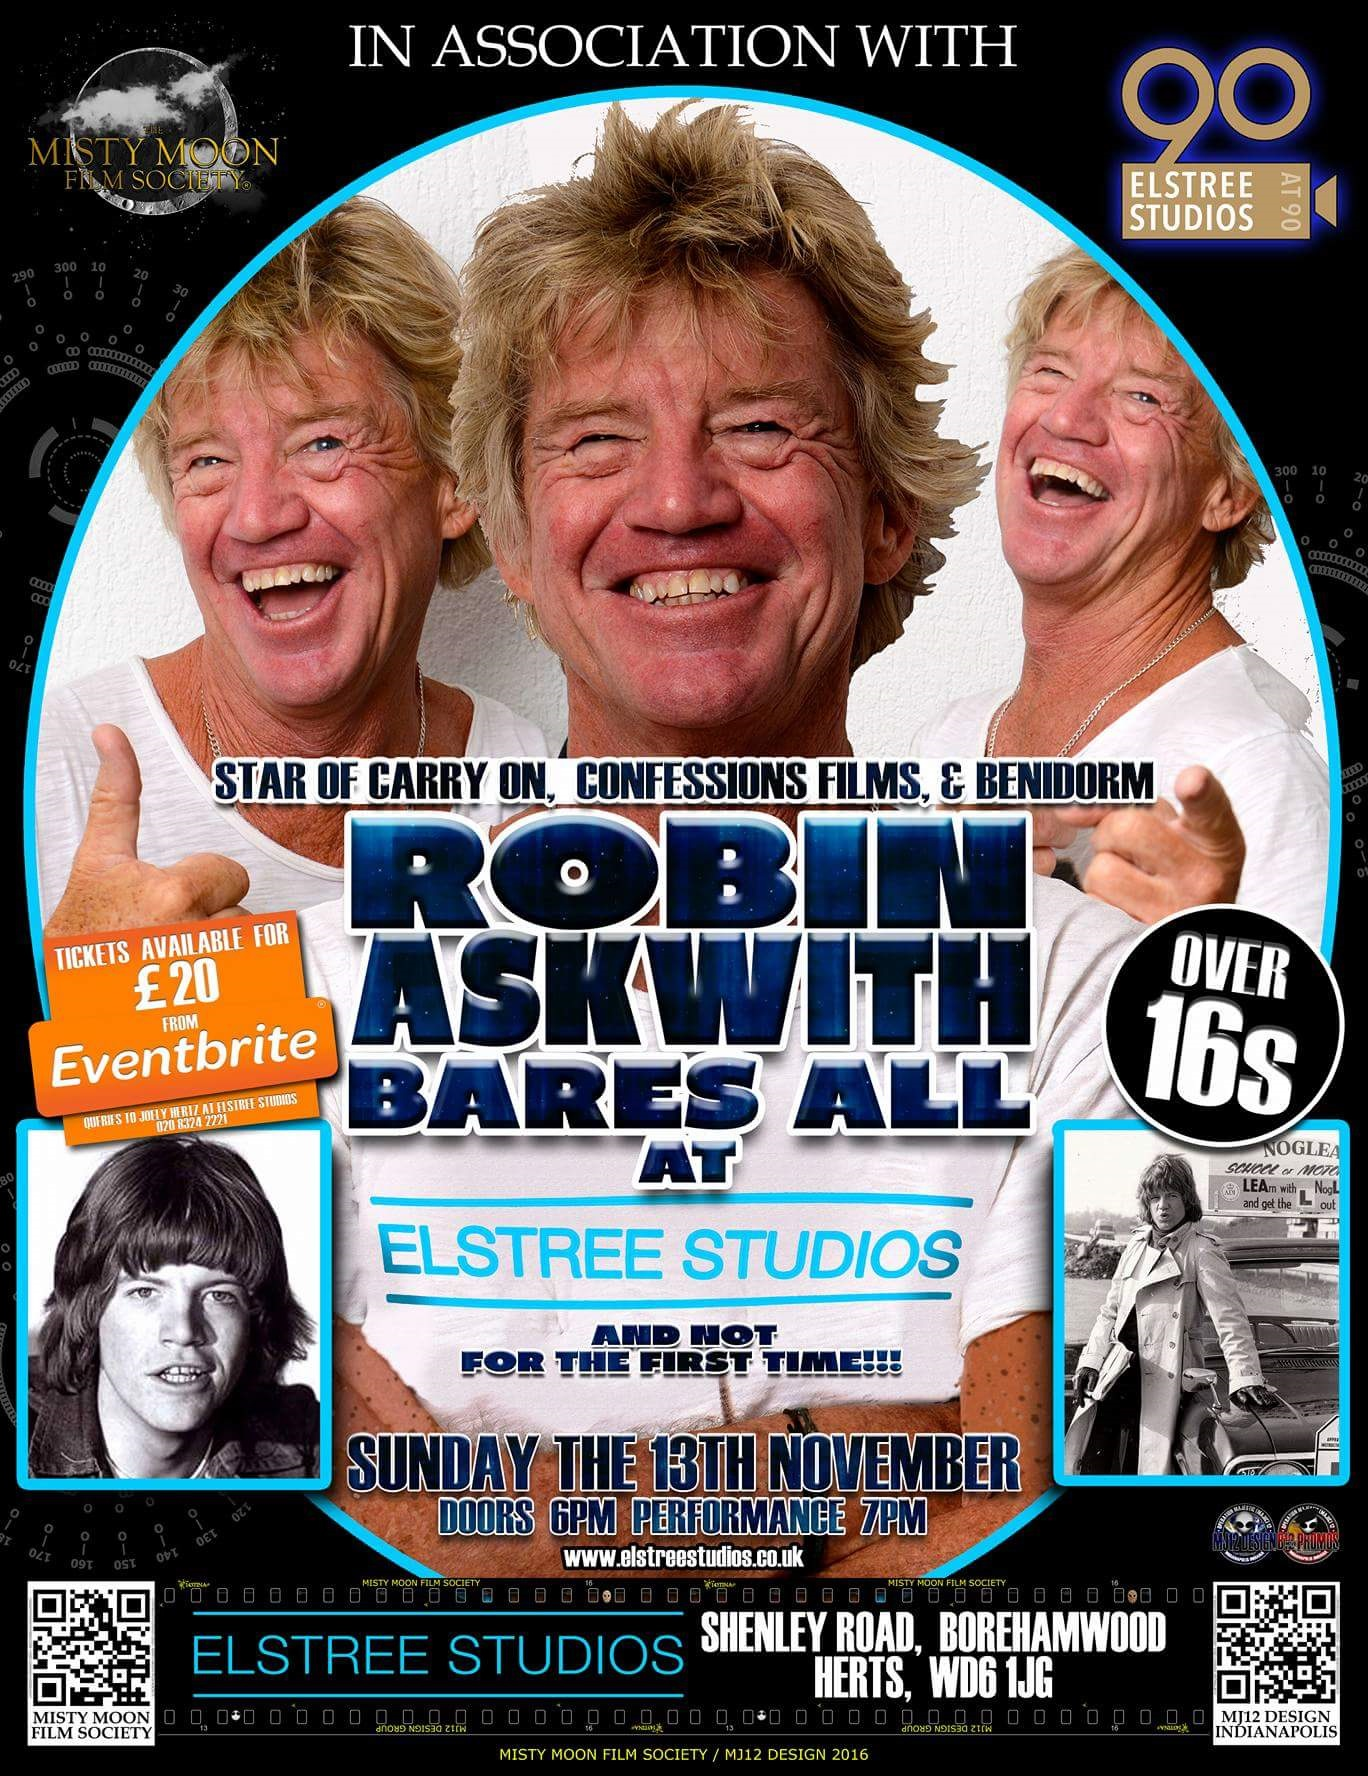 Robin Askwith Bares All at Elstree Studios